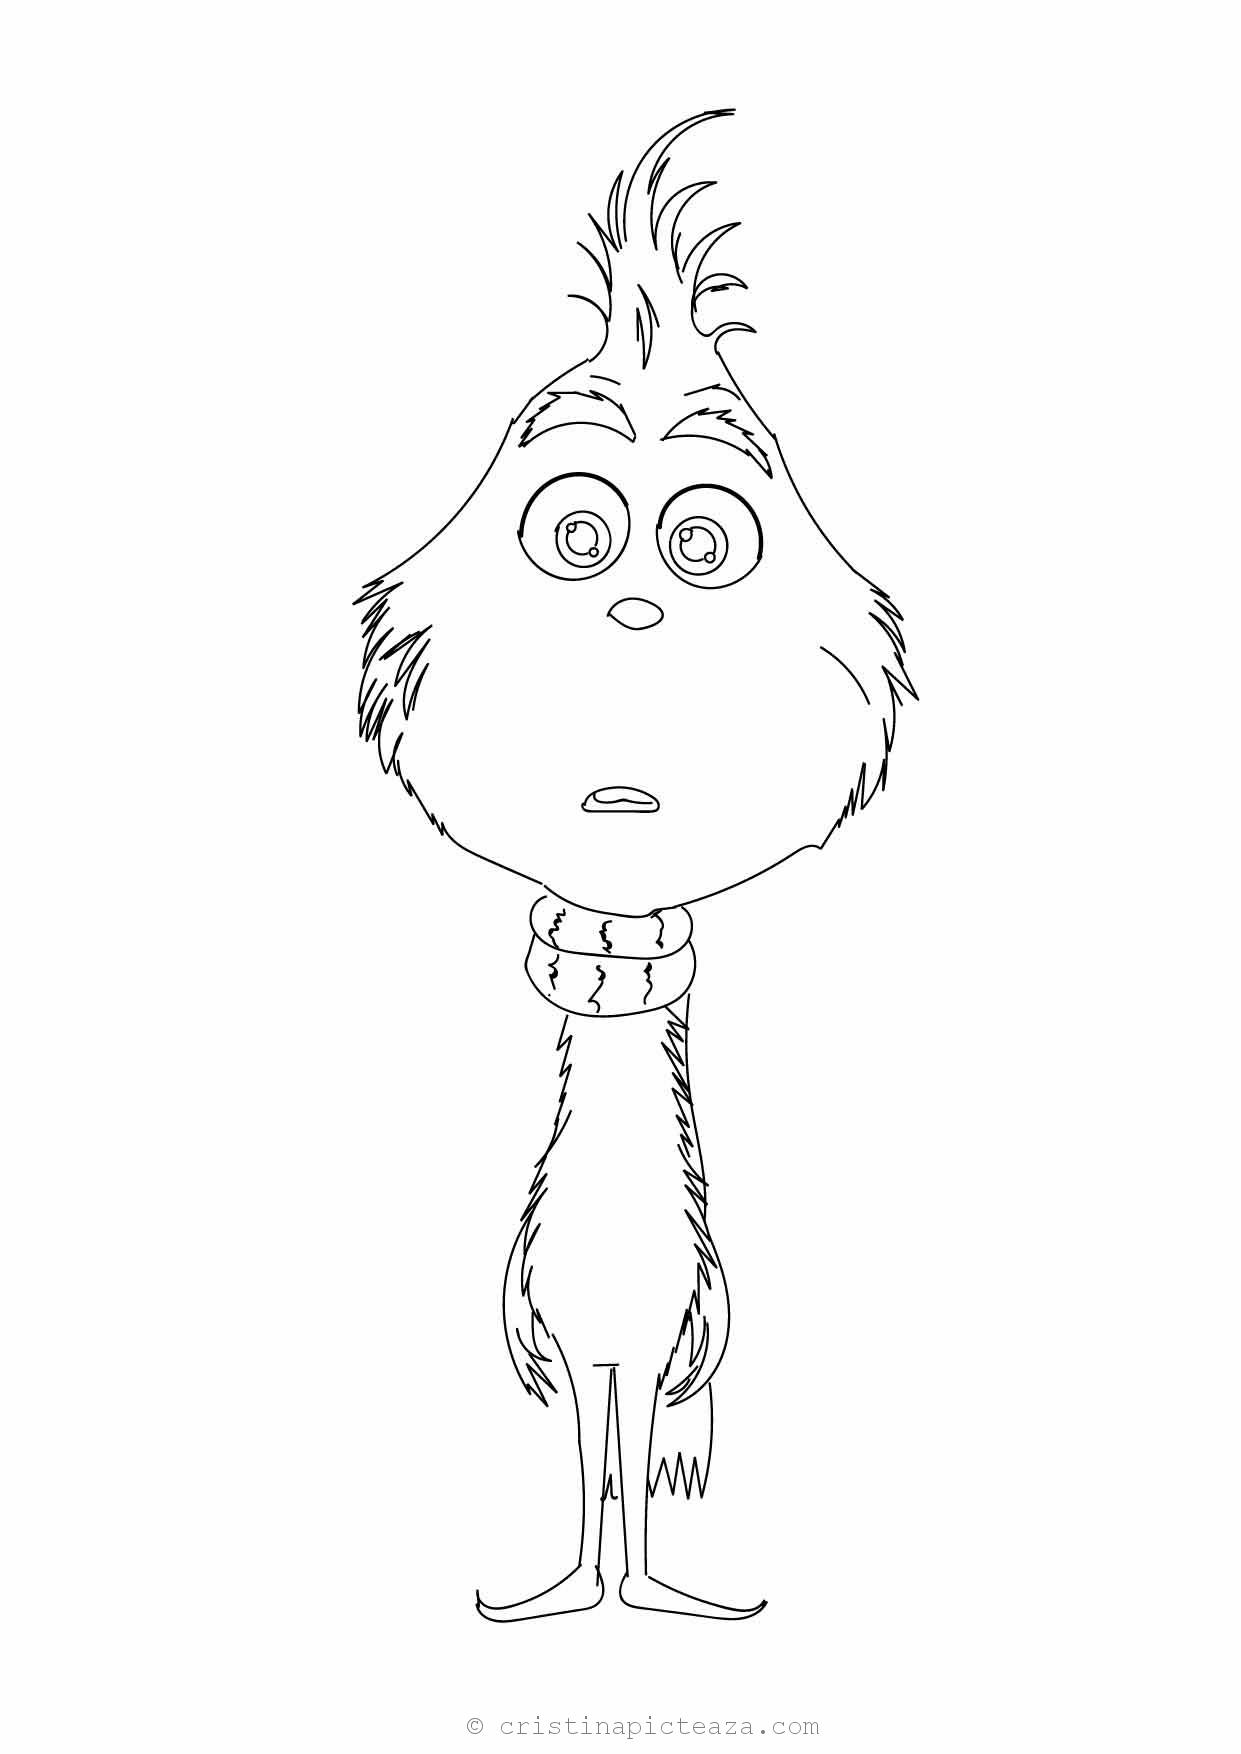 The Grinch coloring pages - Drawings sheets with Grinch